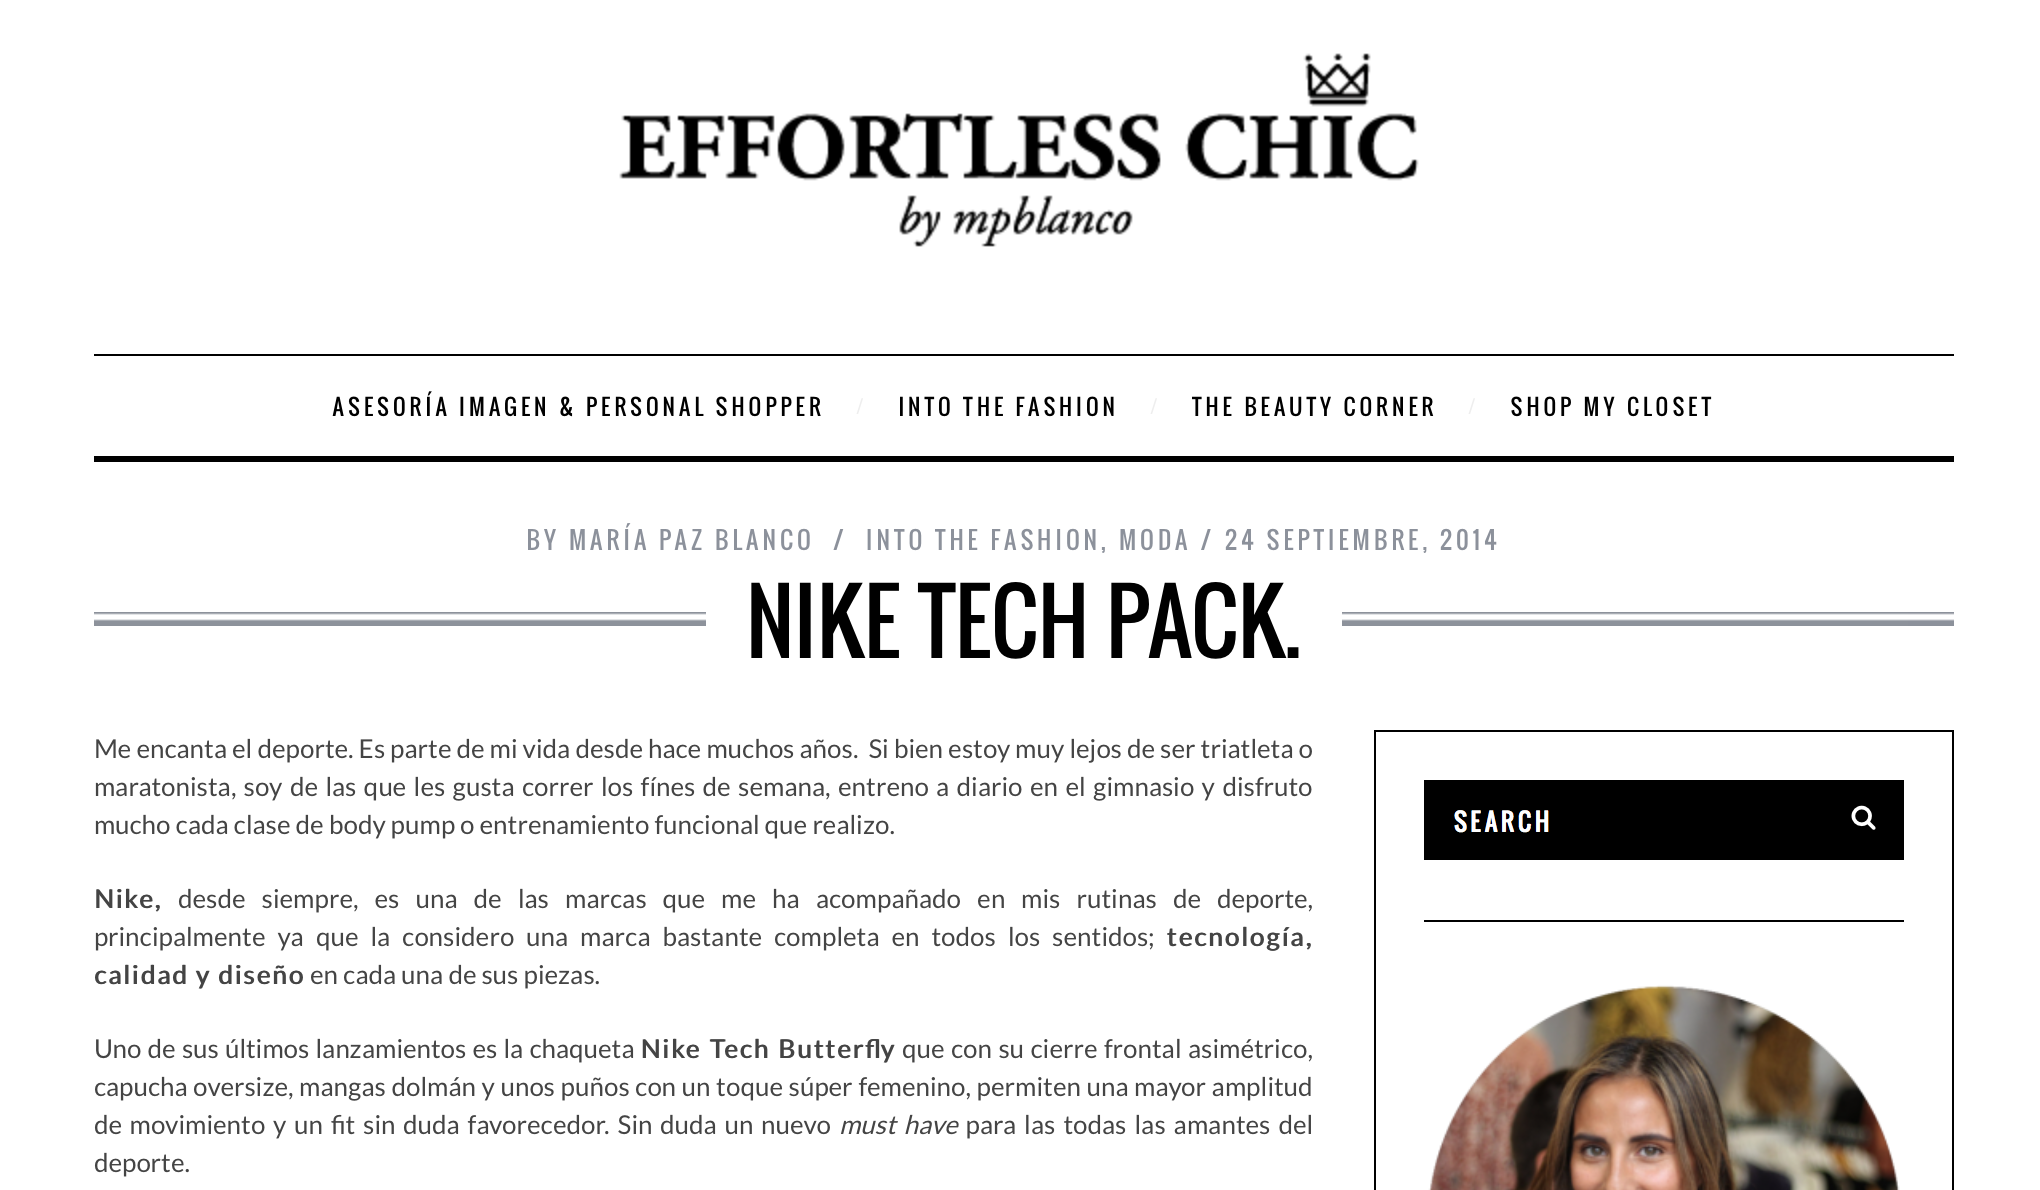 Effortlesschicofficial / Mpblanco